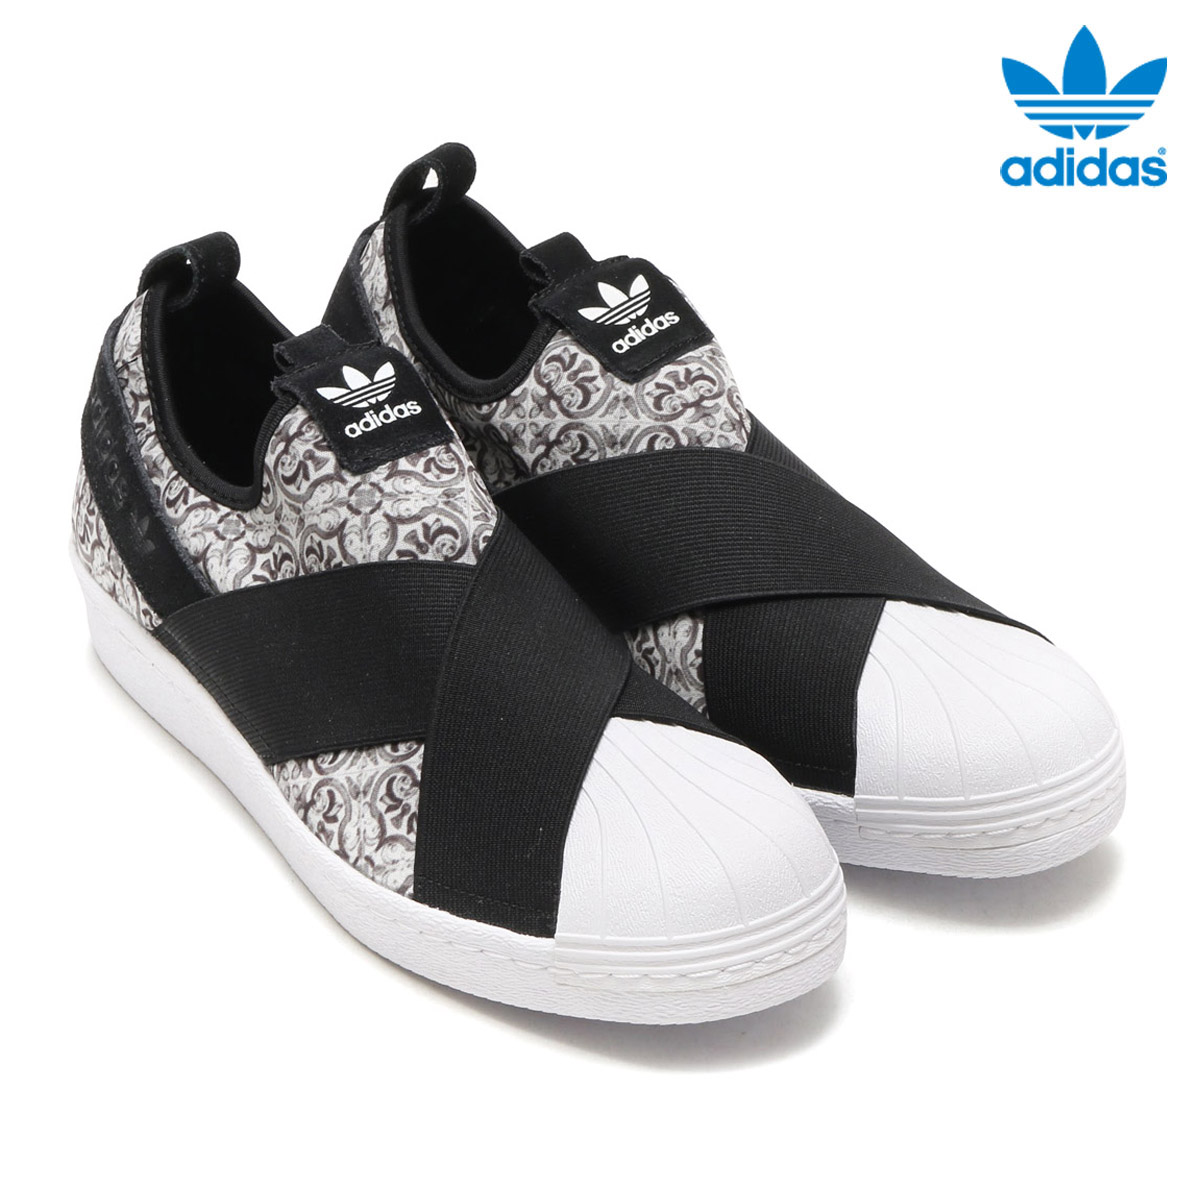 adidas Originals SS SlipOn W (Adidas originals superstar slip-ons) (Core Black/Core Black/Running White) 17FW-I